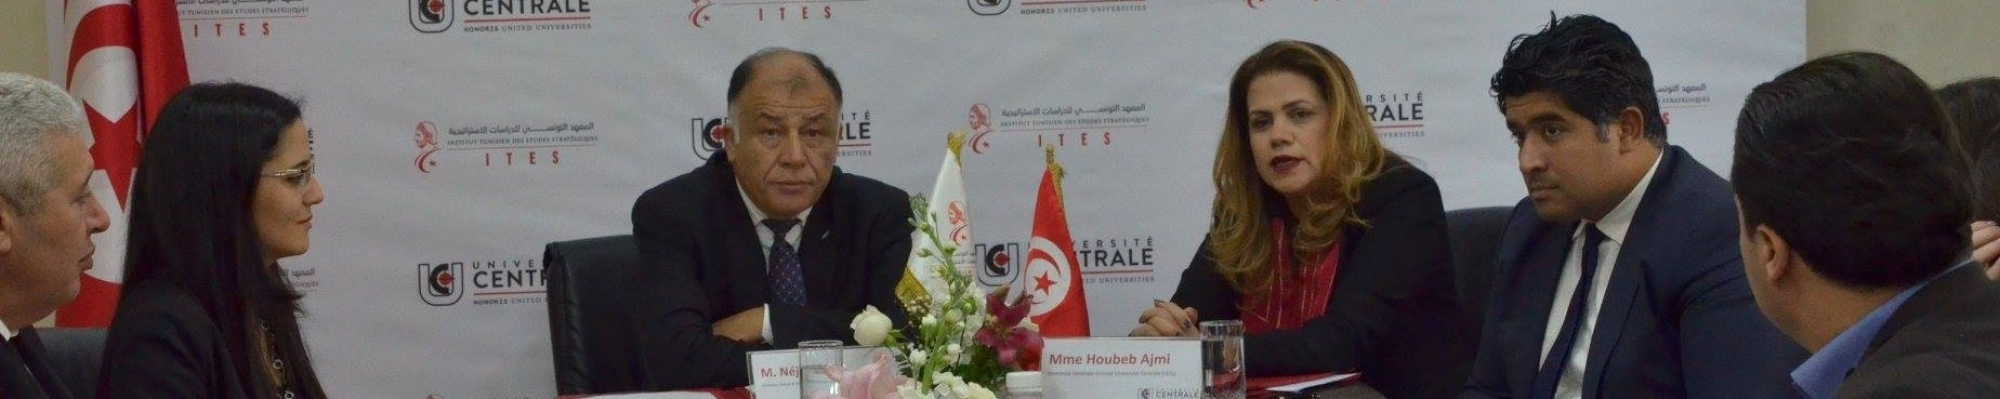 CONVENTION GROUPE UNIVERSITE CENTRALE – INSTITUT TUNISIEN DES ETUDES STRATEGIQUES